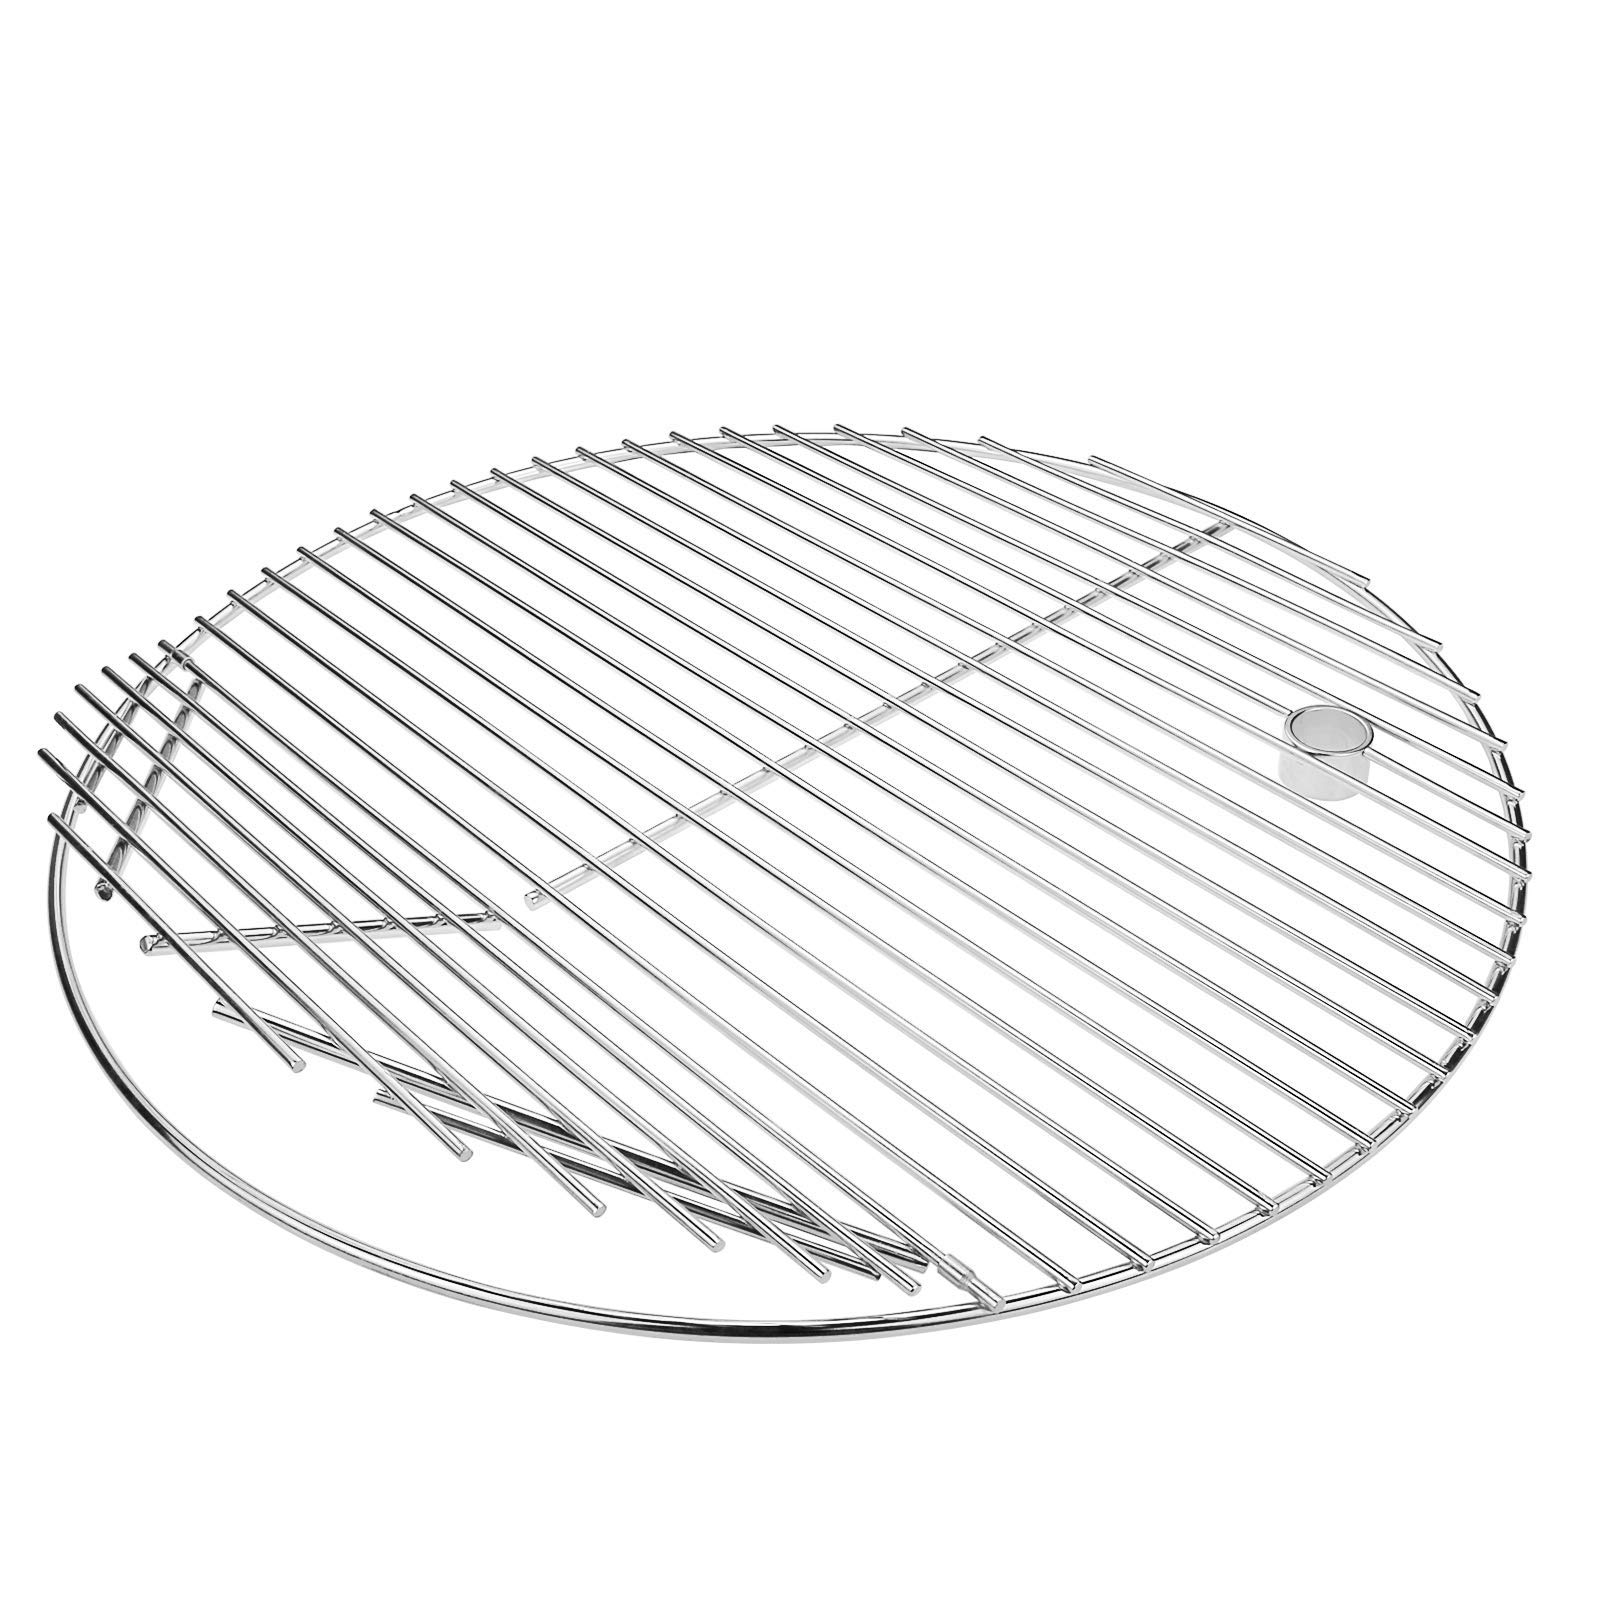 QuliMetal 19.5 Inch SUS 304 Round Cooking Grate Cooking Grid for Akorn Kamado Ceramic Grill, Pit Boss K24, Louisiana Grills K24, Char-Griller 16620 and Other Grills, for 20 Inch Charcoal Grill